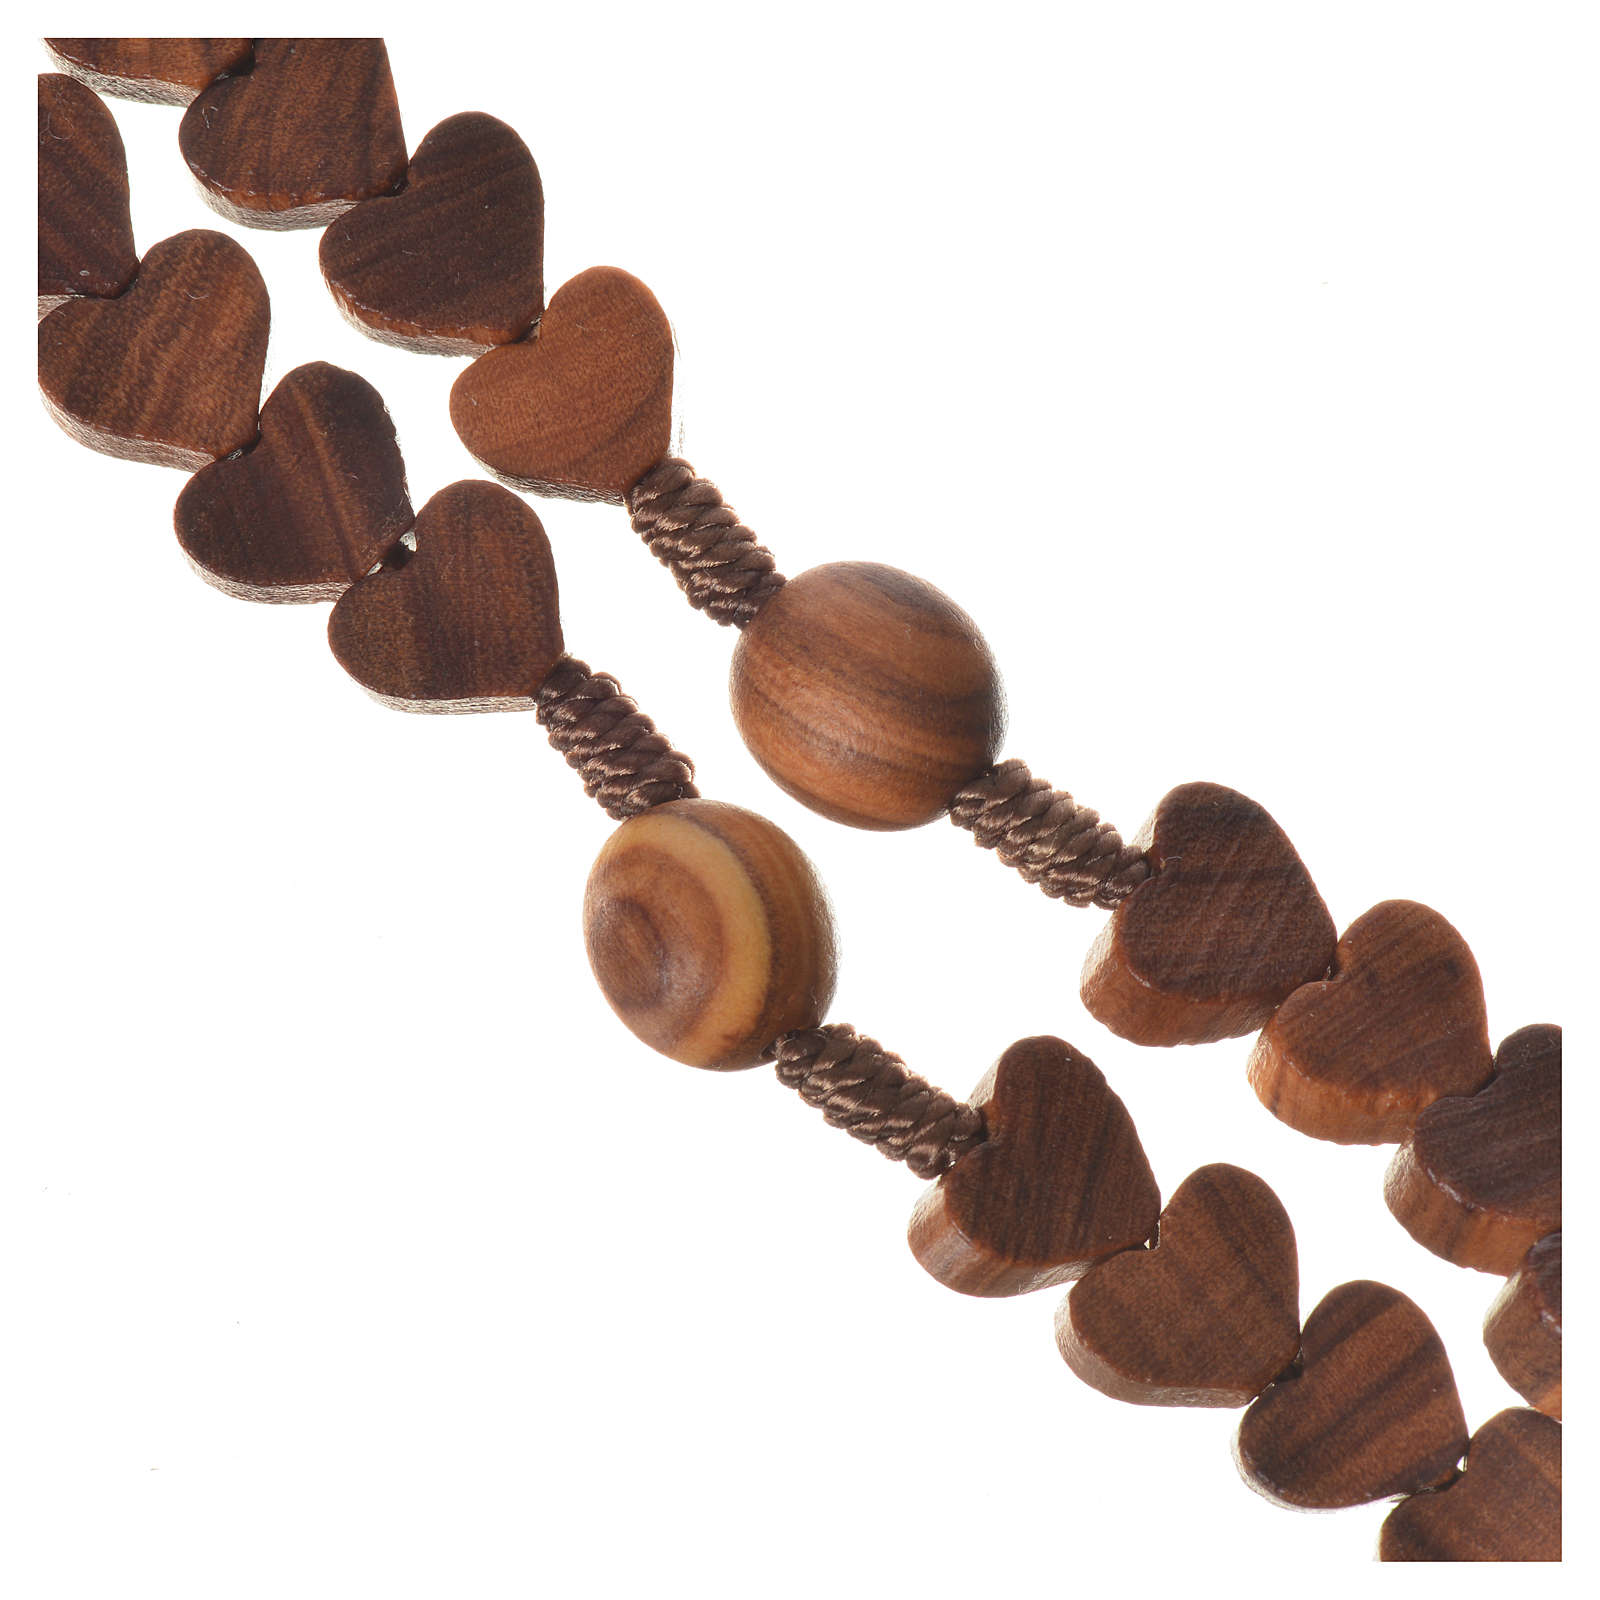 Medjugorje rosary, olive wood, heart grains 4